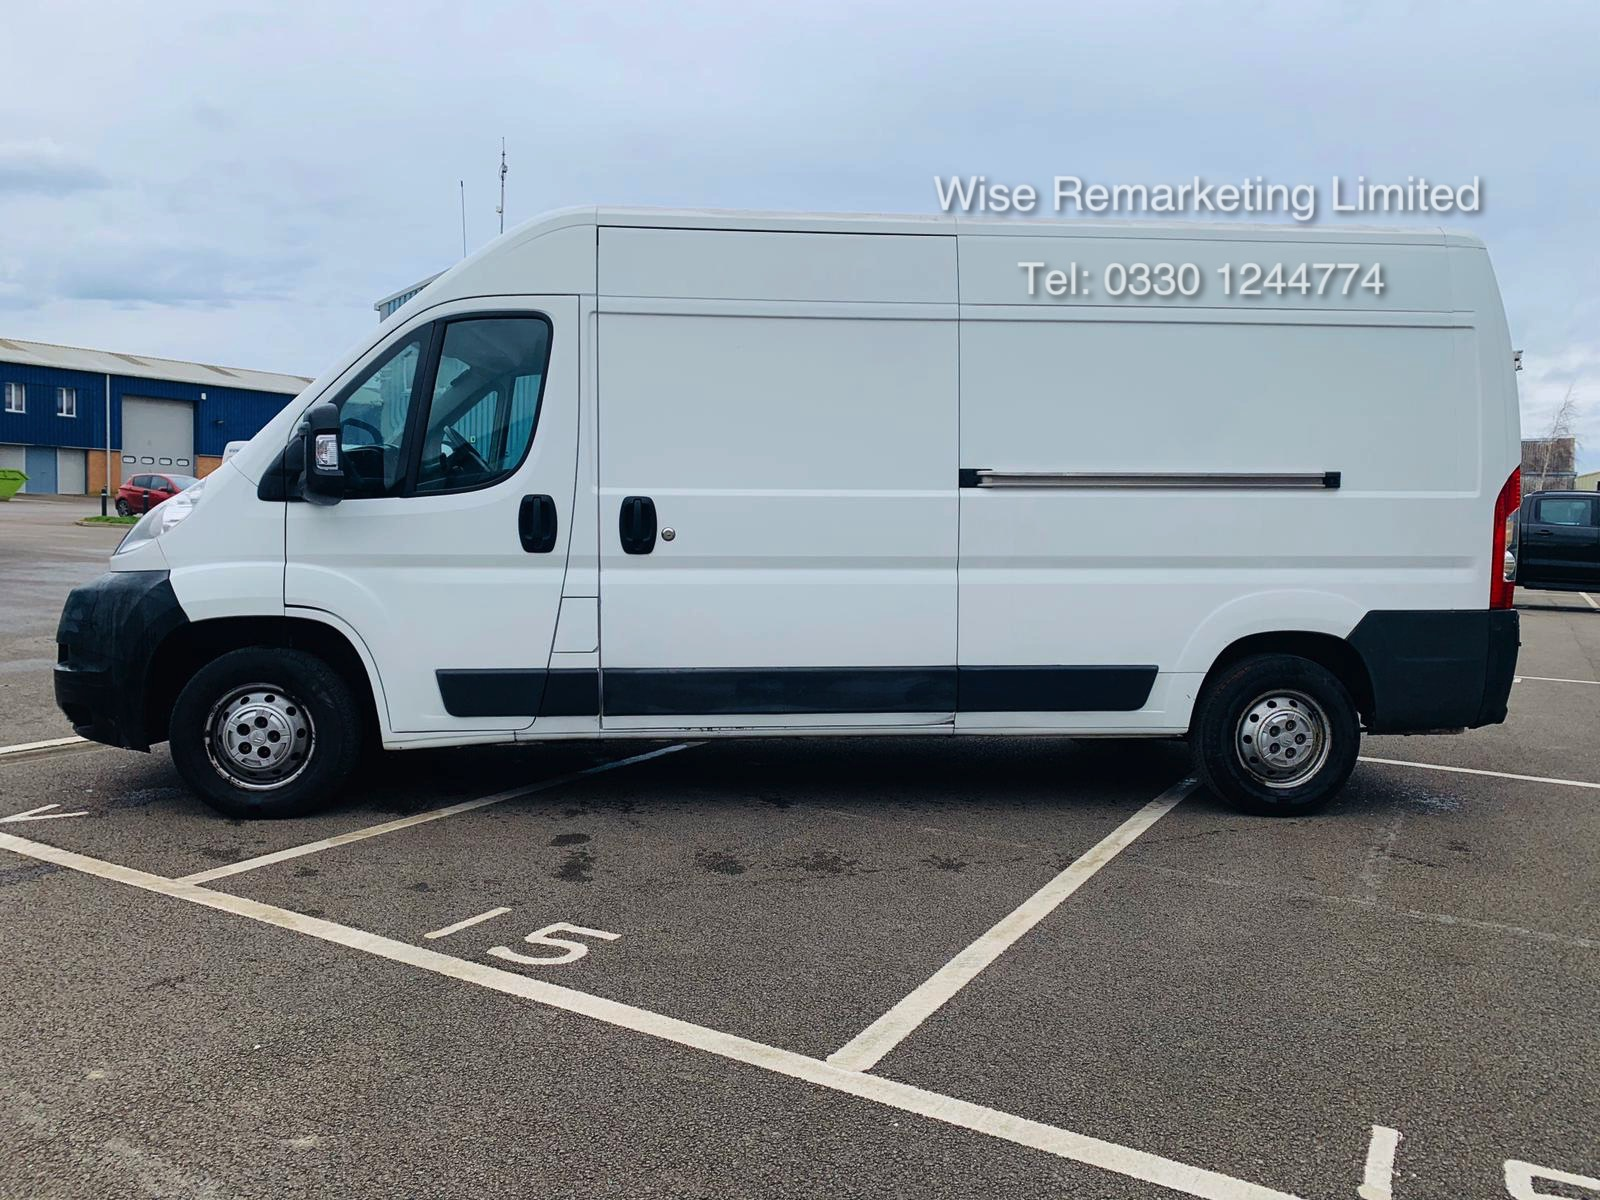 Citroen Relay 35 2.2 HDi (130 BHP) LWB 2012 12 Reg - 6 Speed - Ply Lined SAVE 20% NO VAT - Image 2 of 20